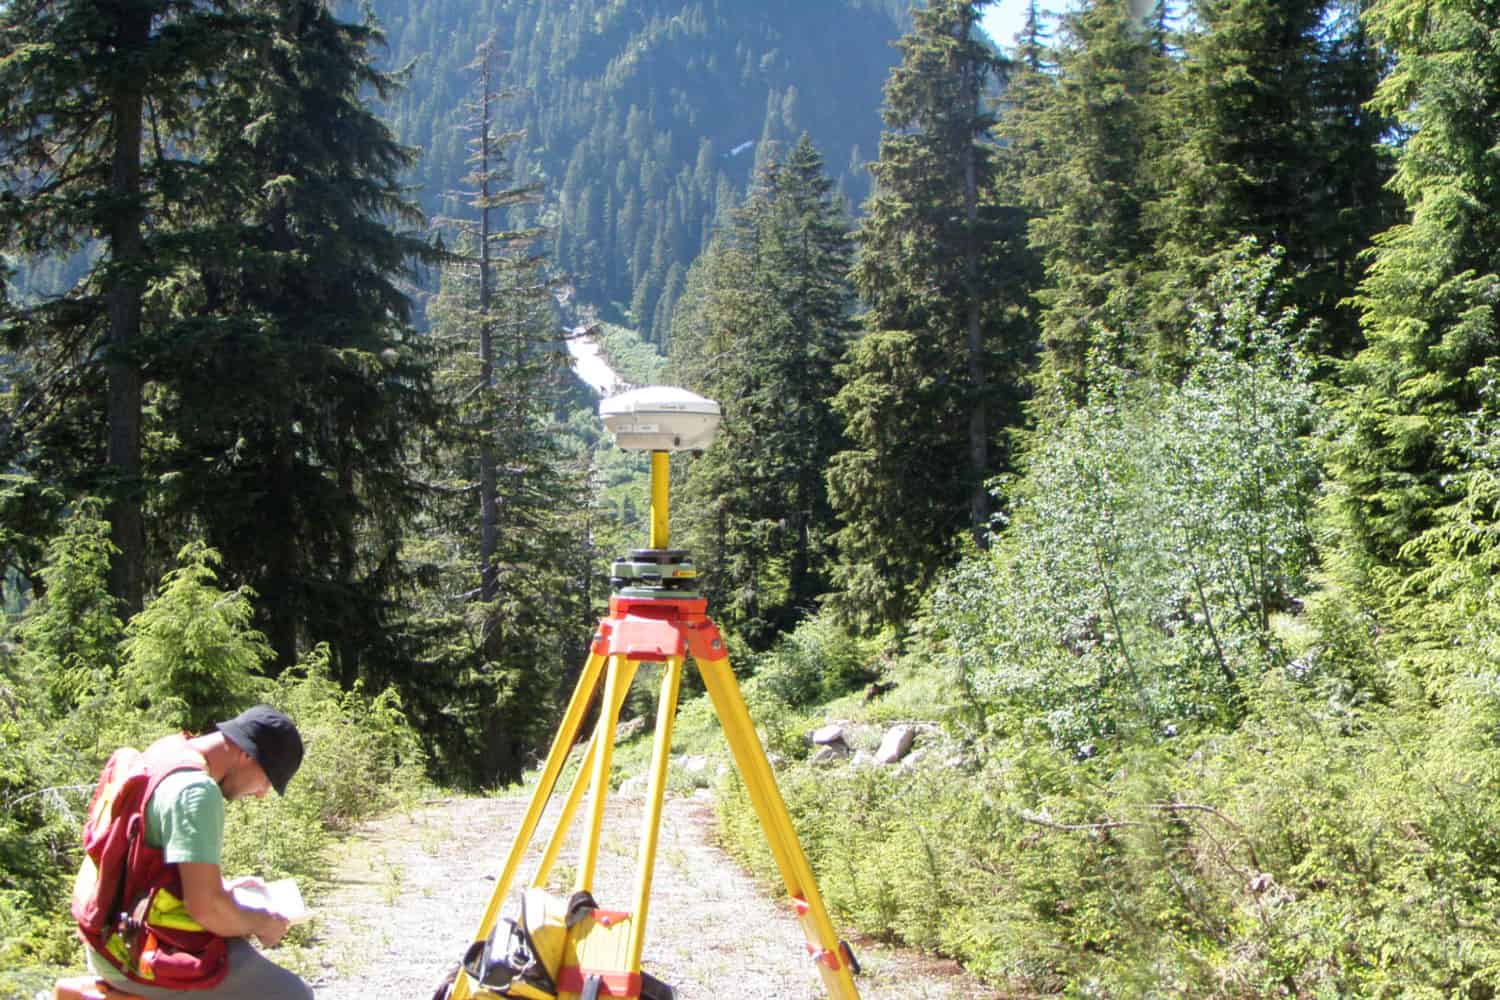 GPS Photo control survey for 2010 Olympic mapping project for the DND. N. Manchon. Capilano water shed, N.Van., 2009.